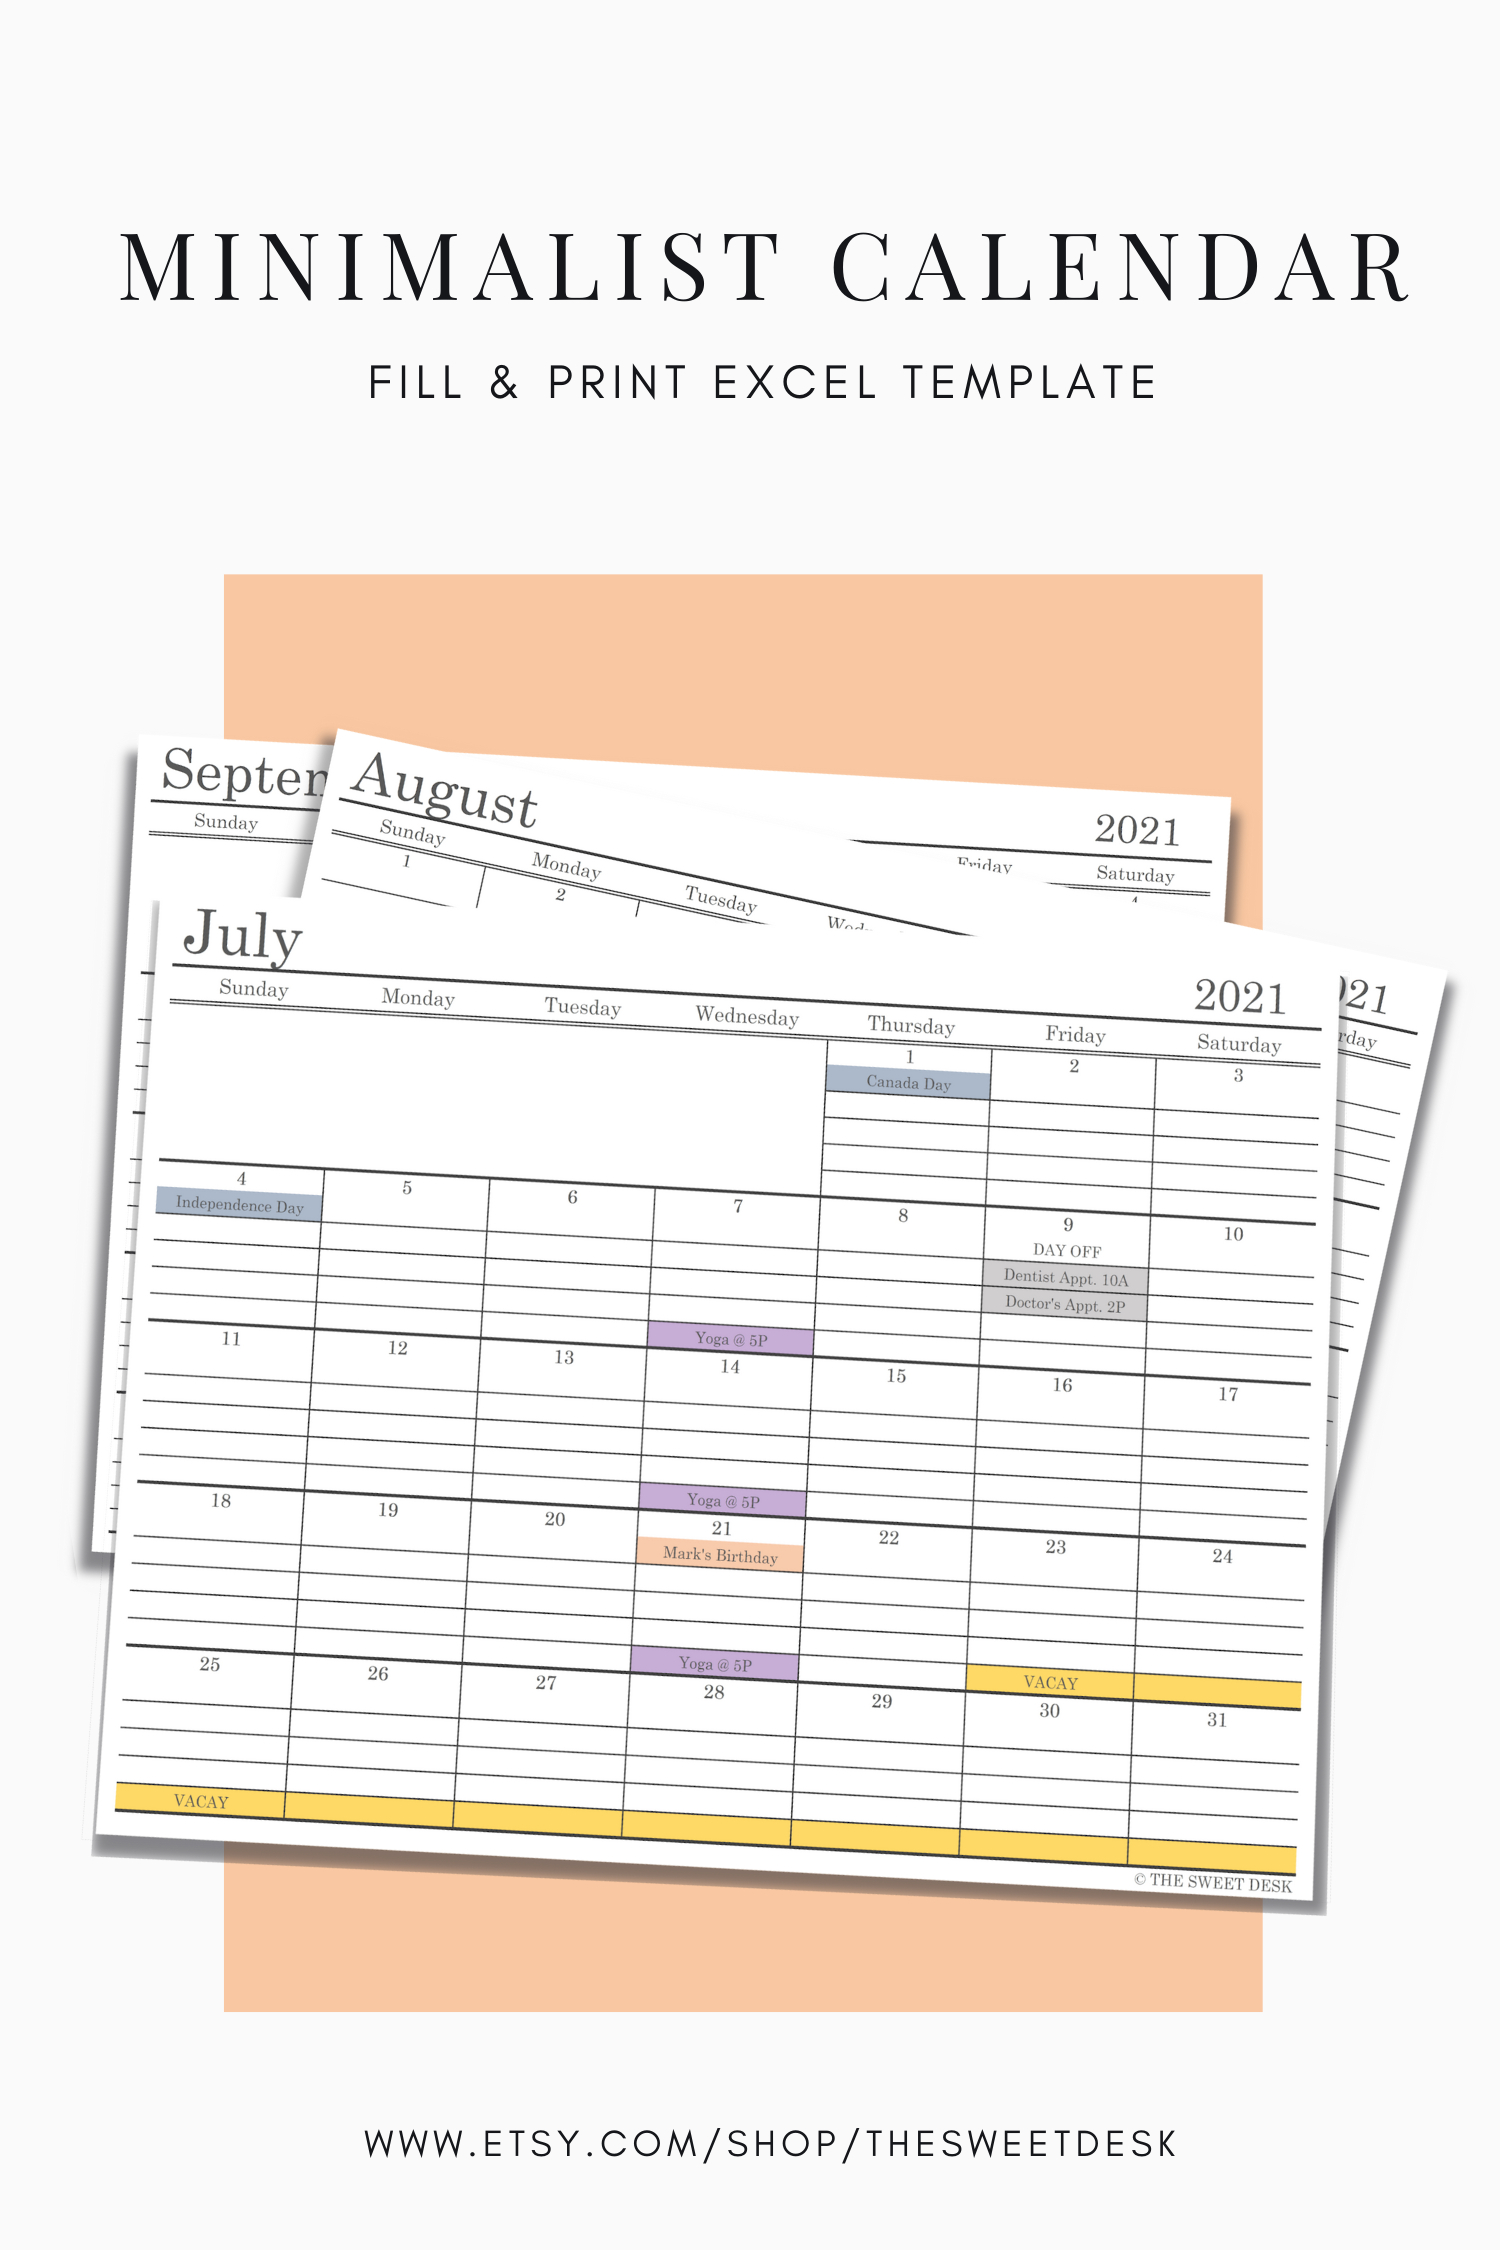 Pin On Excel Spreadsheets | Diy Calendars And Planners intended for Sunday To Saturday Year Calendar 2021/21